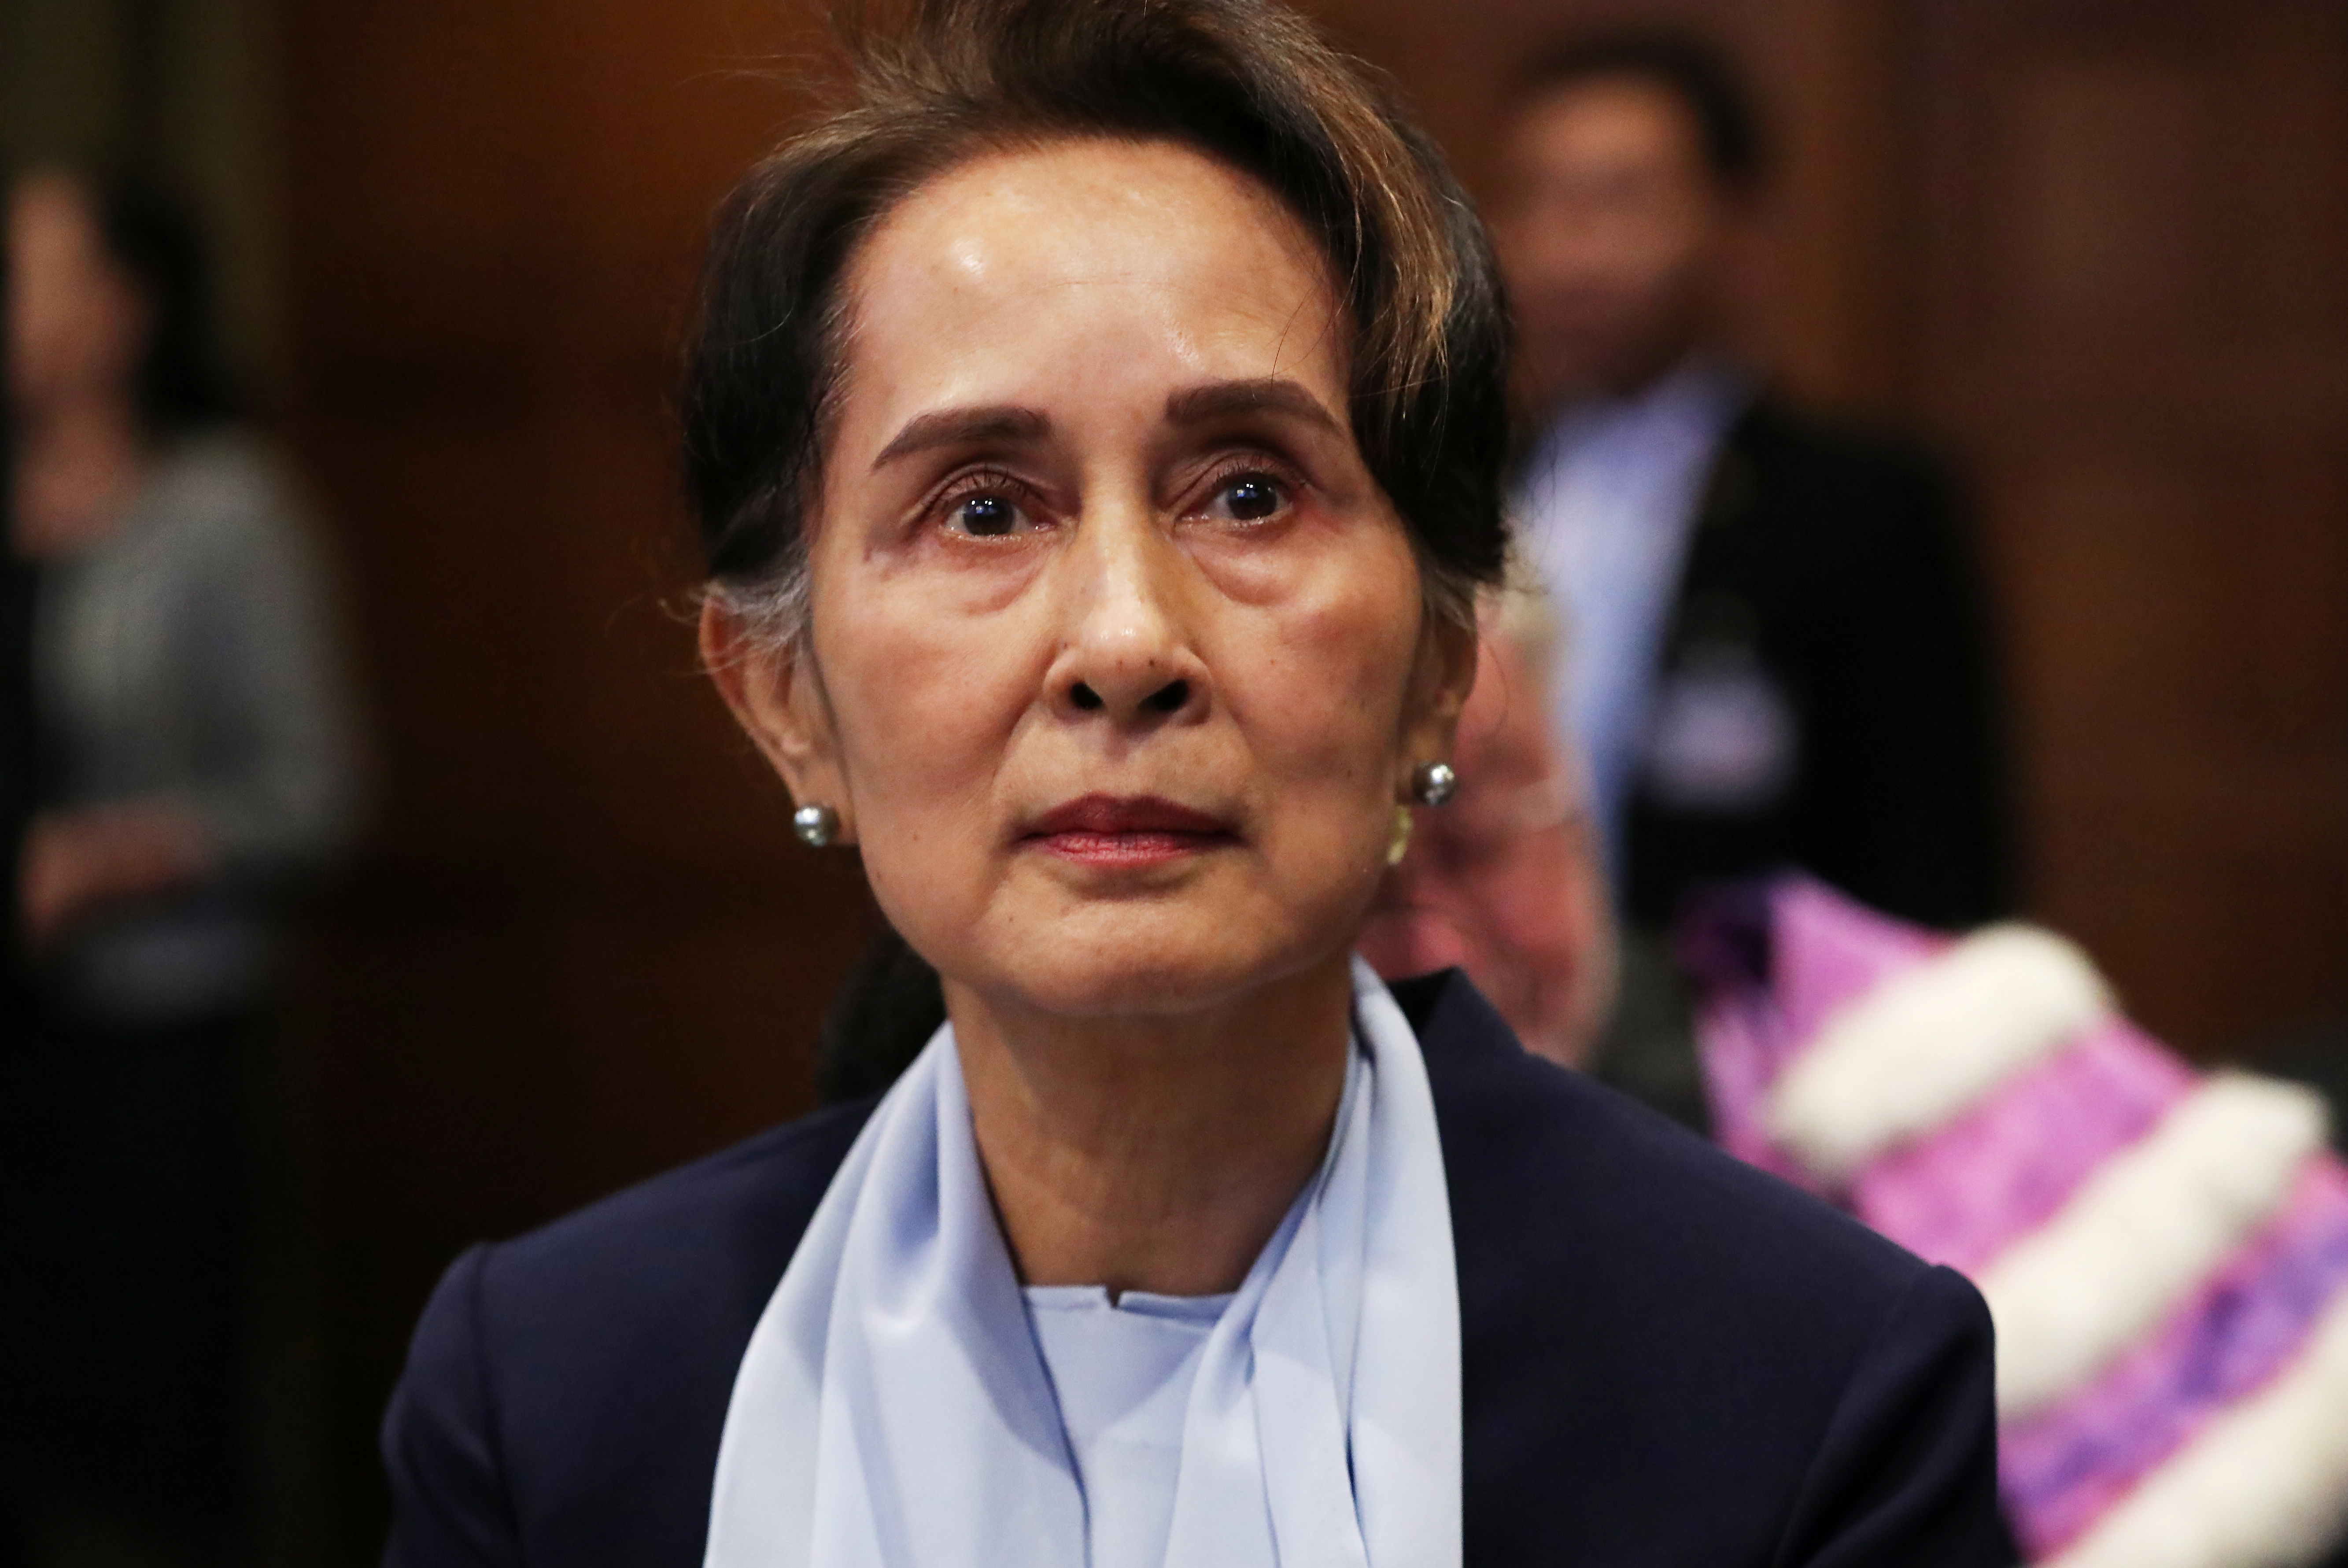 FILE PHOTO: Myanmar's leader Aung San Suu Kyi arrives at the International Court of Justice (ICJ) for the second day of hearings in a case filed by Gambia against Myanmar alleging genocide against the minority Muslim Rohingya population, in The Hague, Netherlands December 11, 2019.  REUTERS/Yves Herman